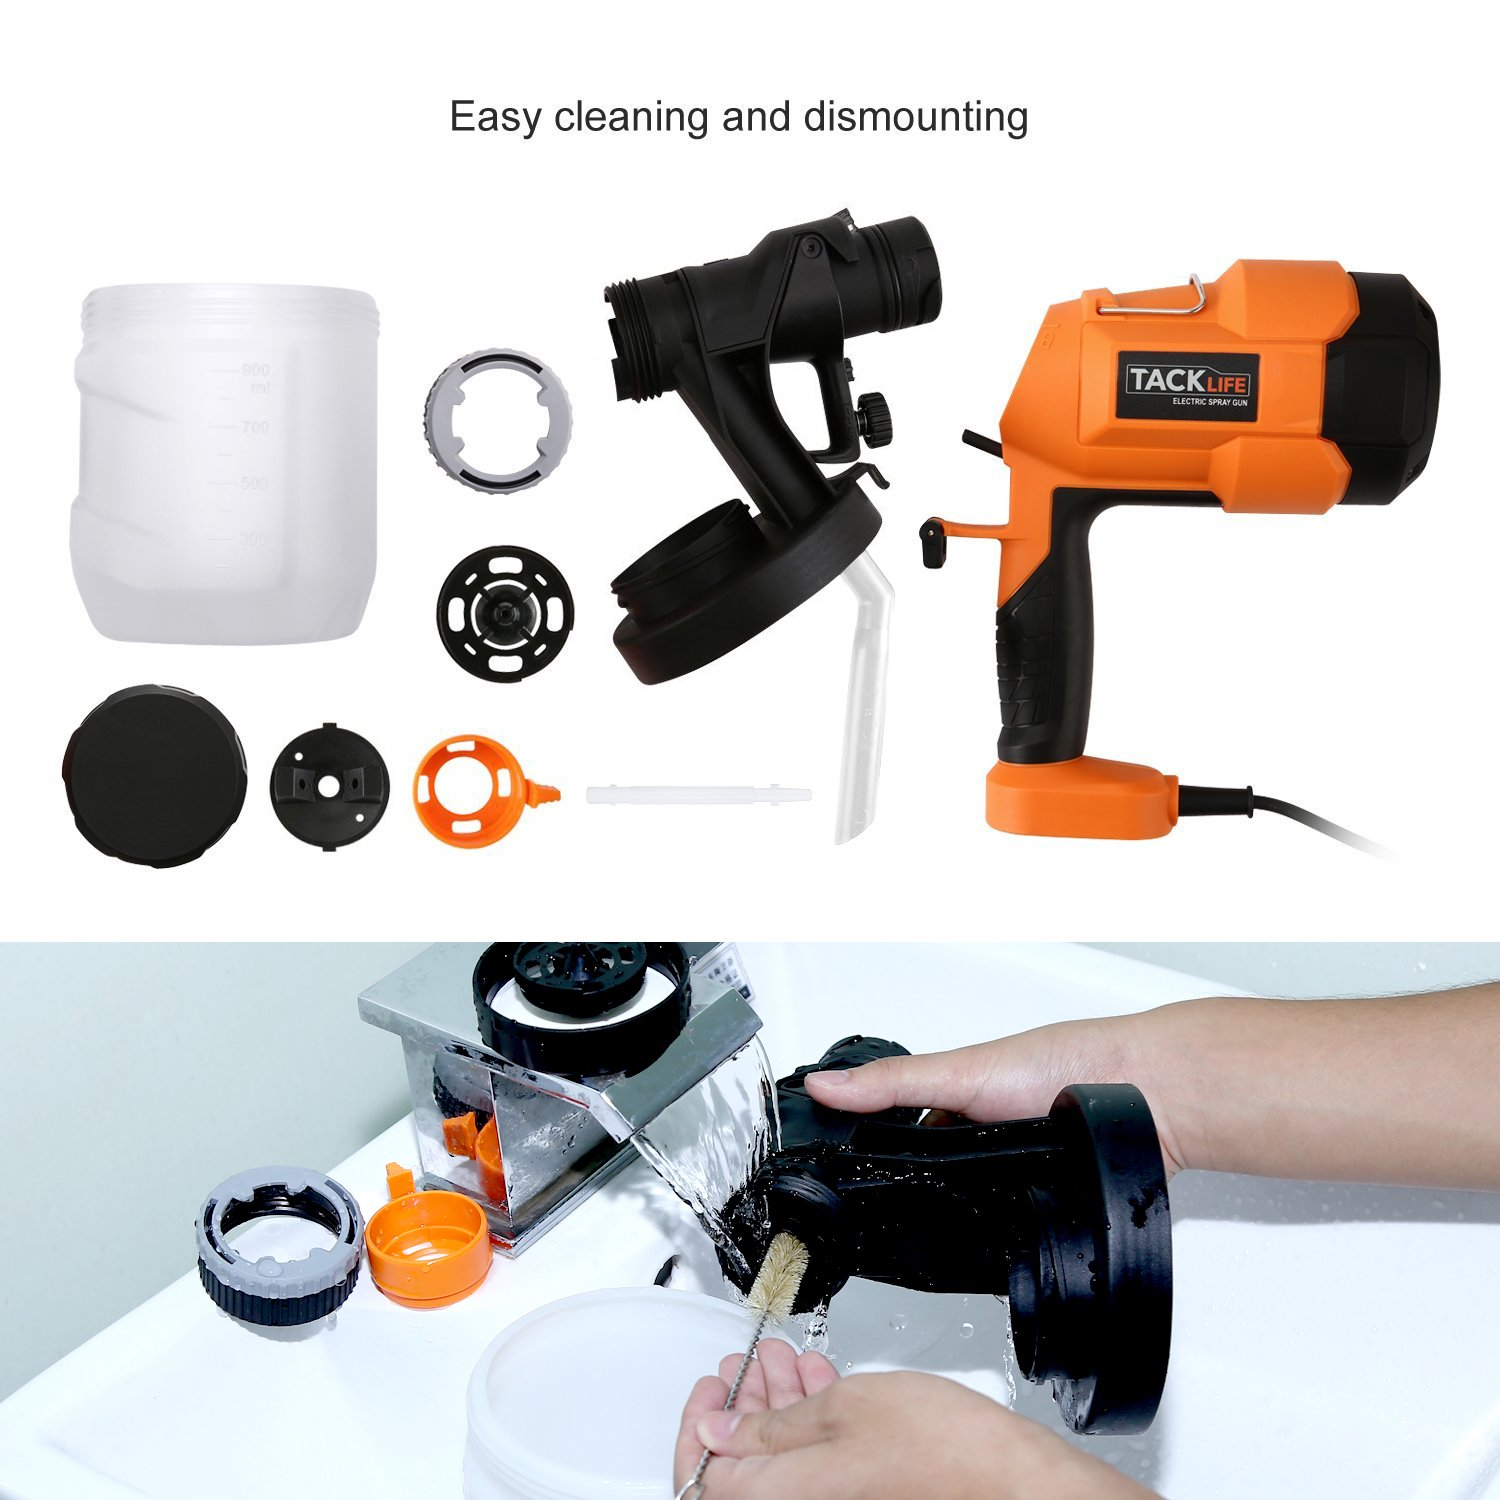 Tacklife sgp15ac advanced electric spray gun 800mlmin paint sprayer tacklife sgp15ac advanced electric spray gun 800mlmin paint sprayer with three spray patterns amazon home improvement fandeluxe Gallery